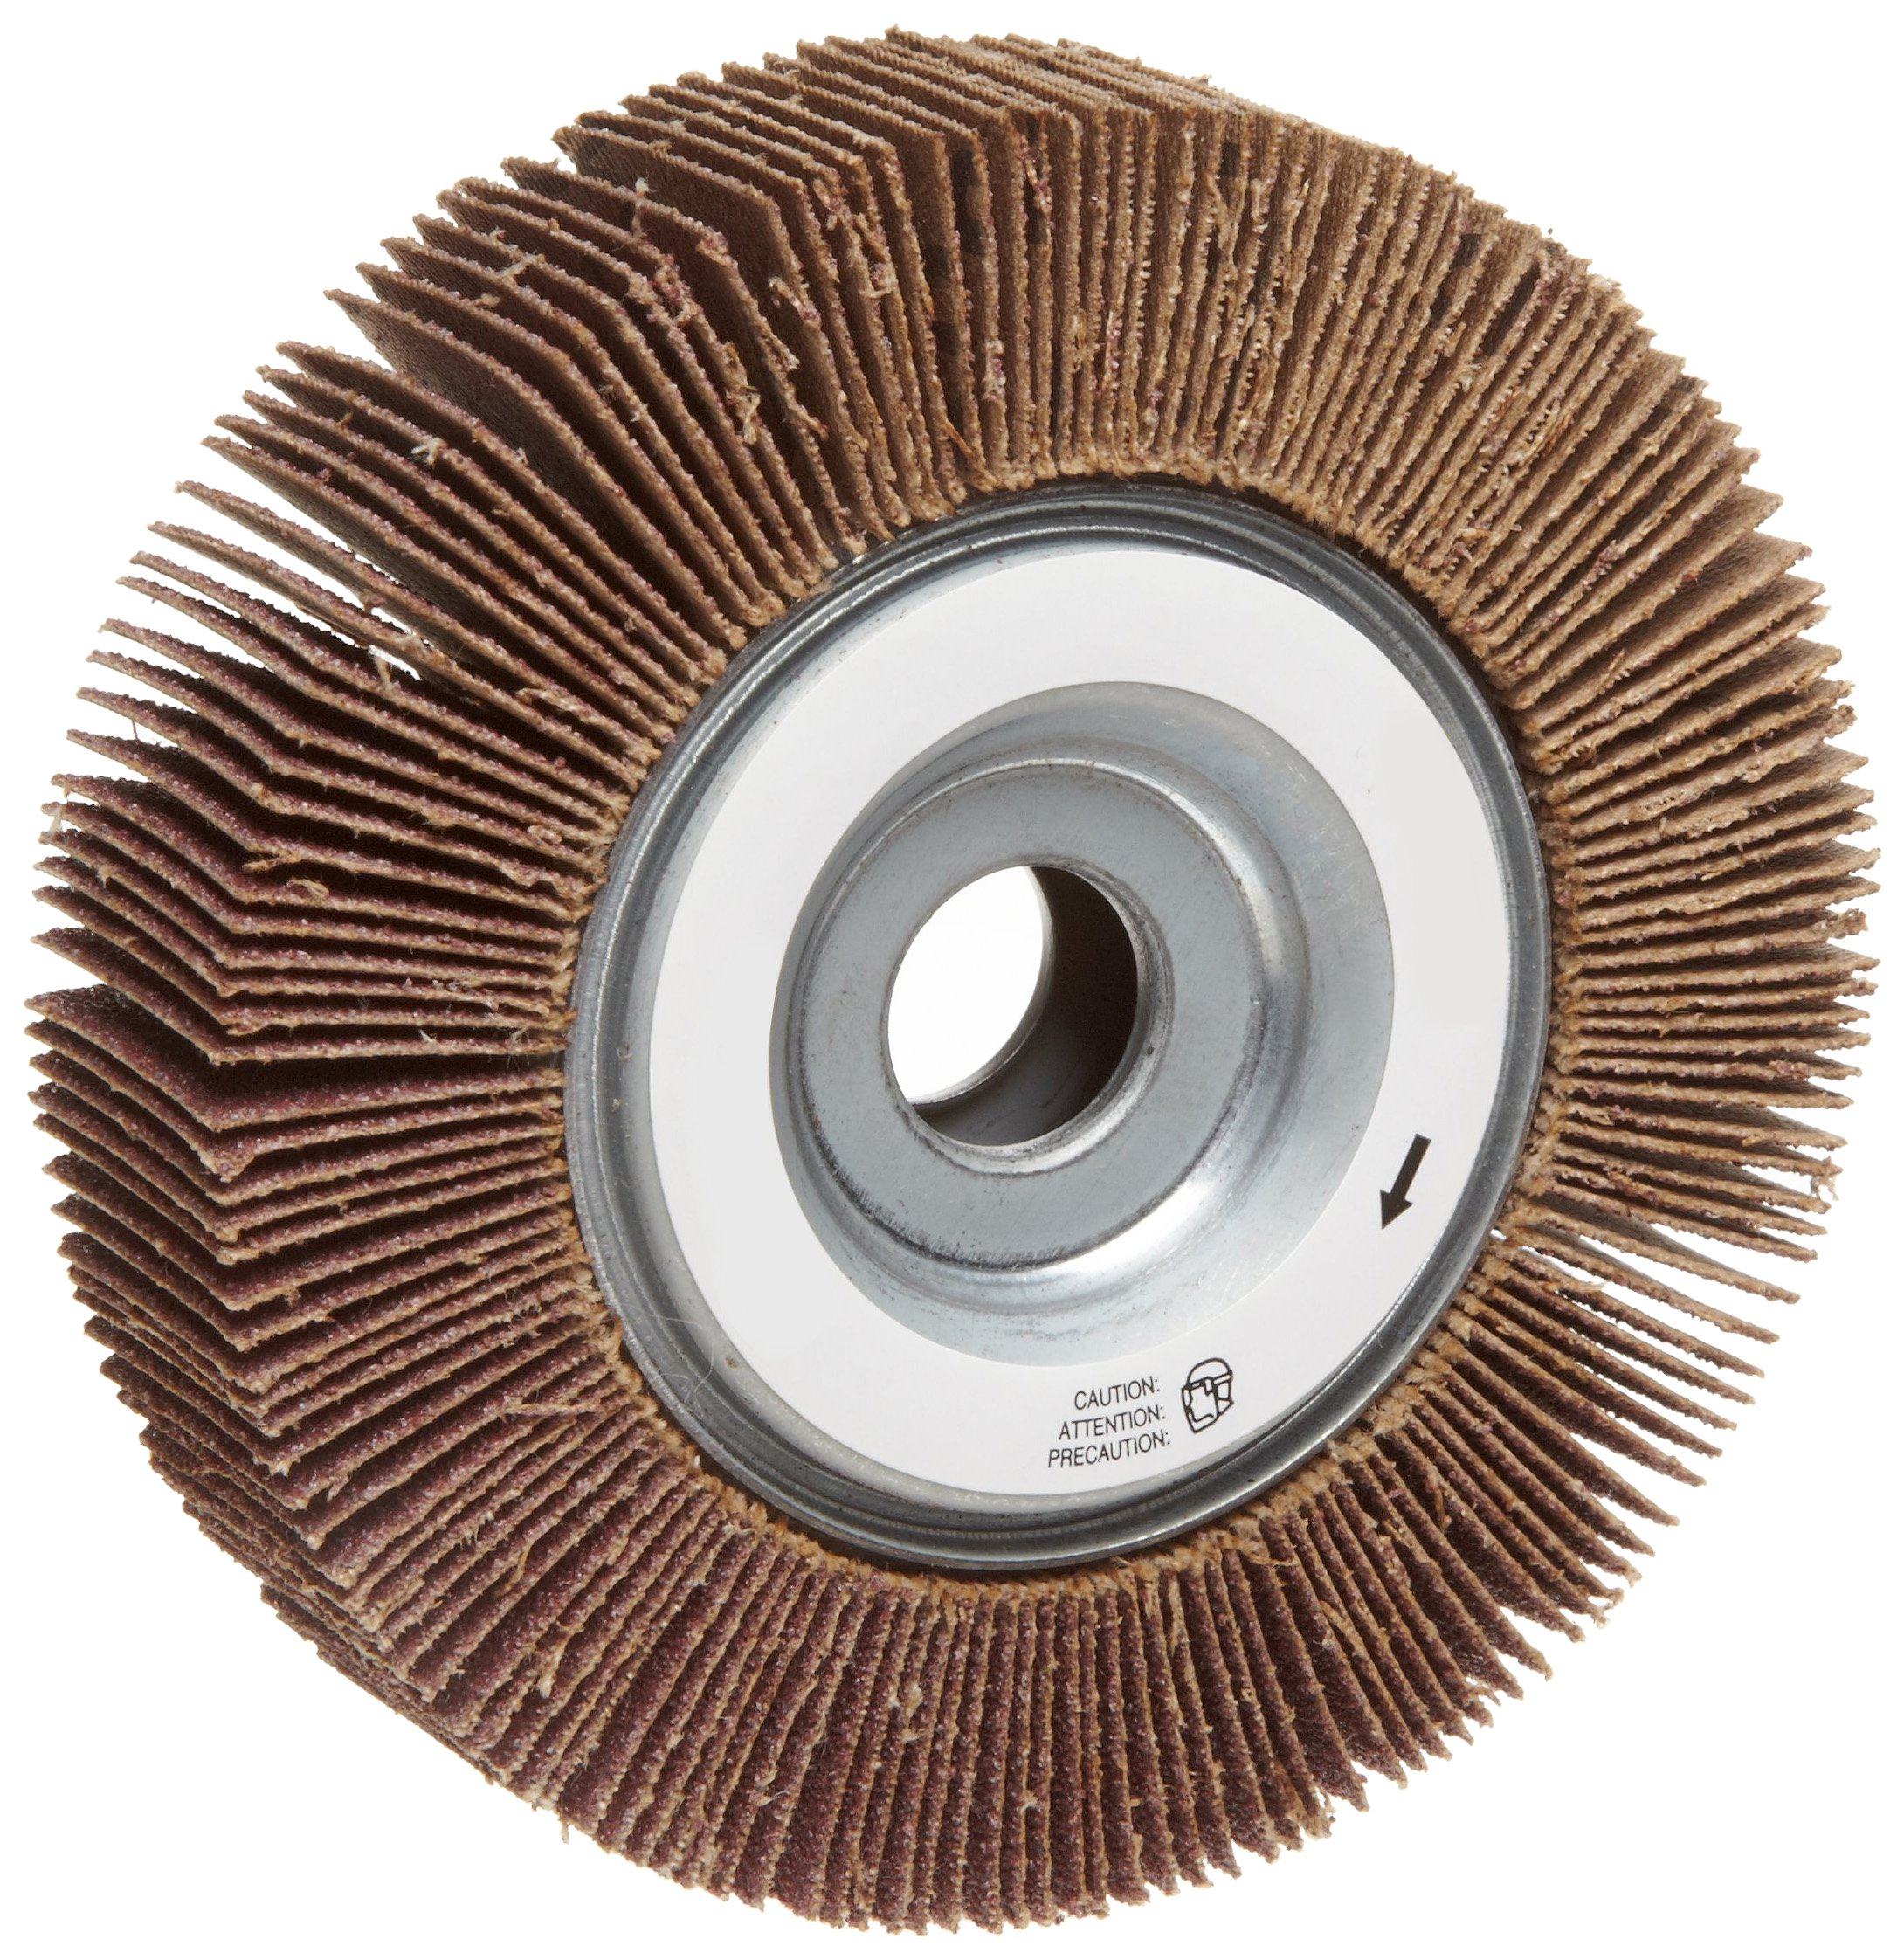 Norton Metalite R265 Abrasive Flap Wheel, 5/8'' Arbor, Round Hole, Aluminum Oxide, 4'' Dia., 1'' Face Width, Grit 120, 12000 Max RPM (Pack of 1)